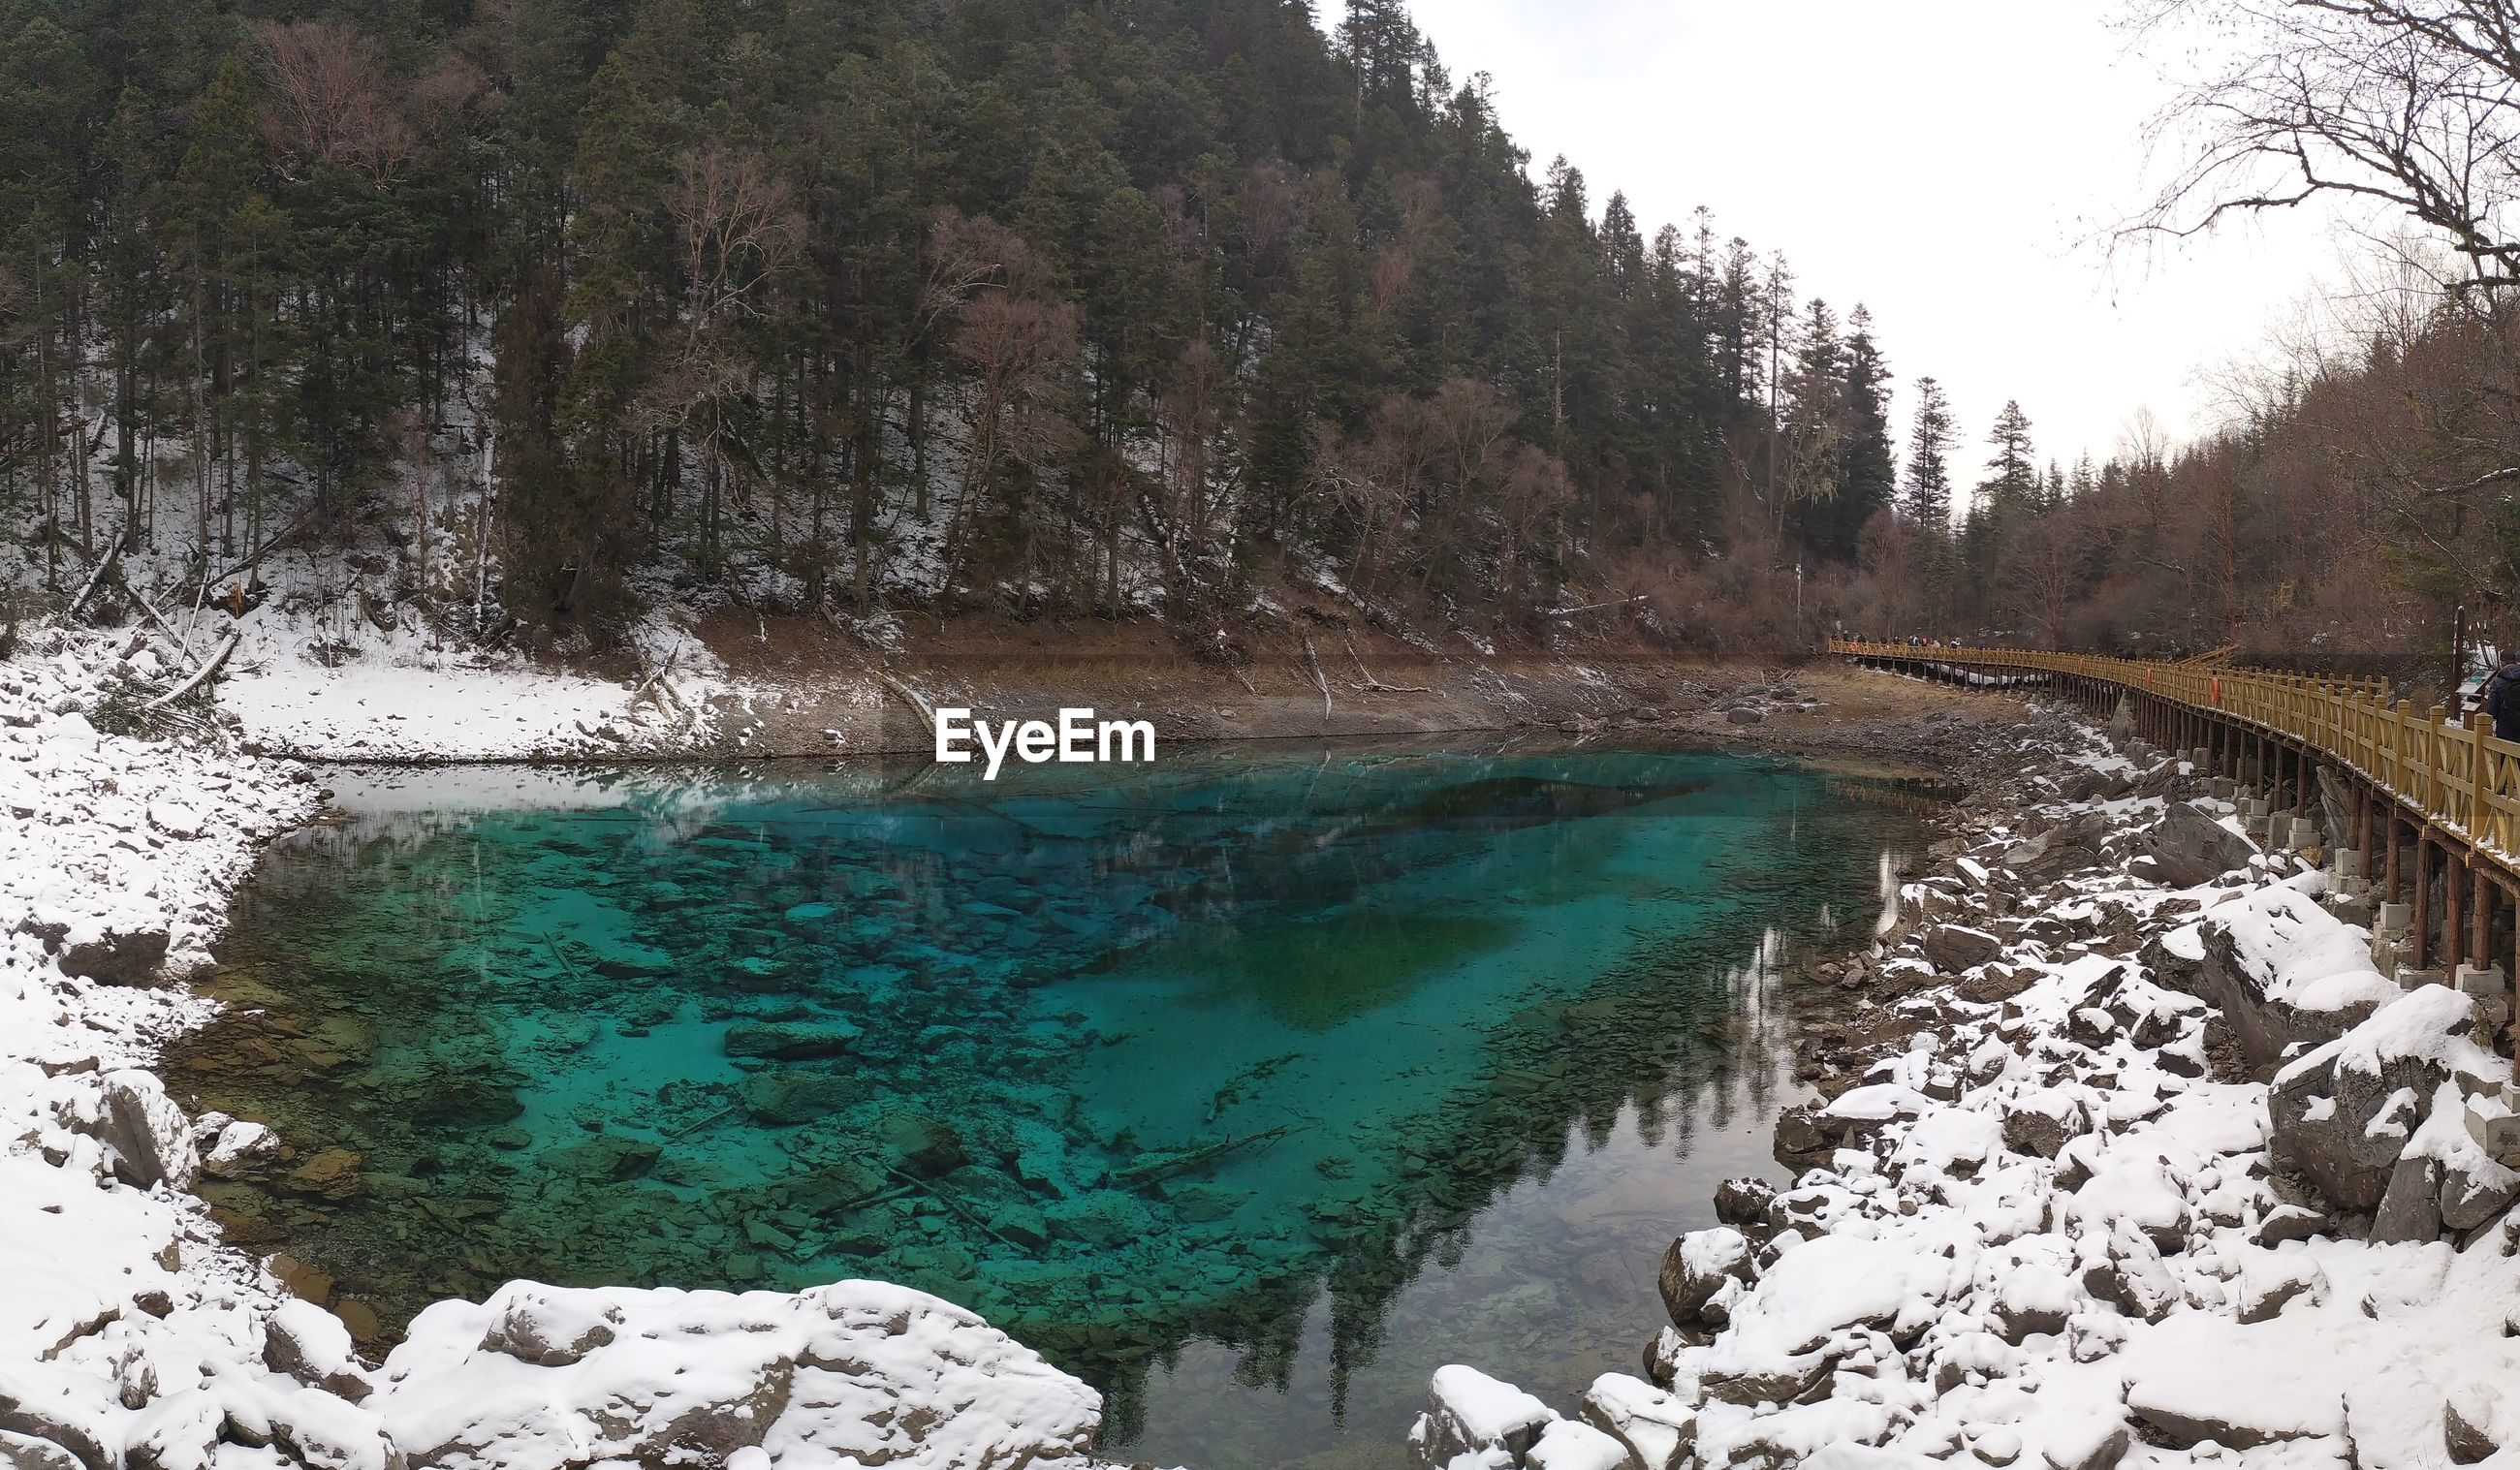 Scenic view of lake amidst trees during winter